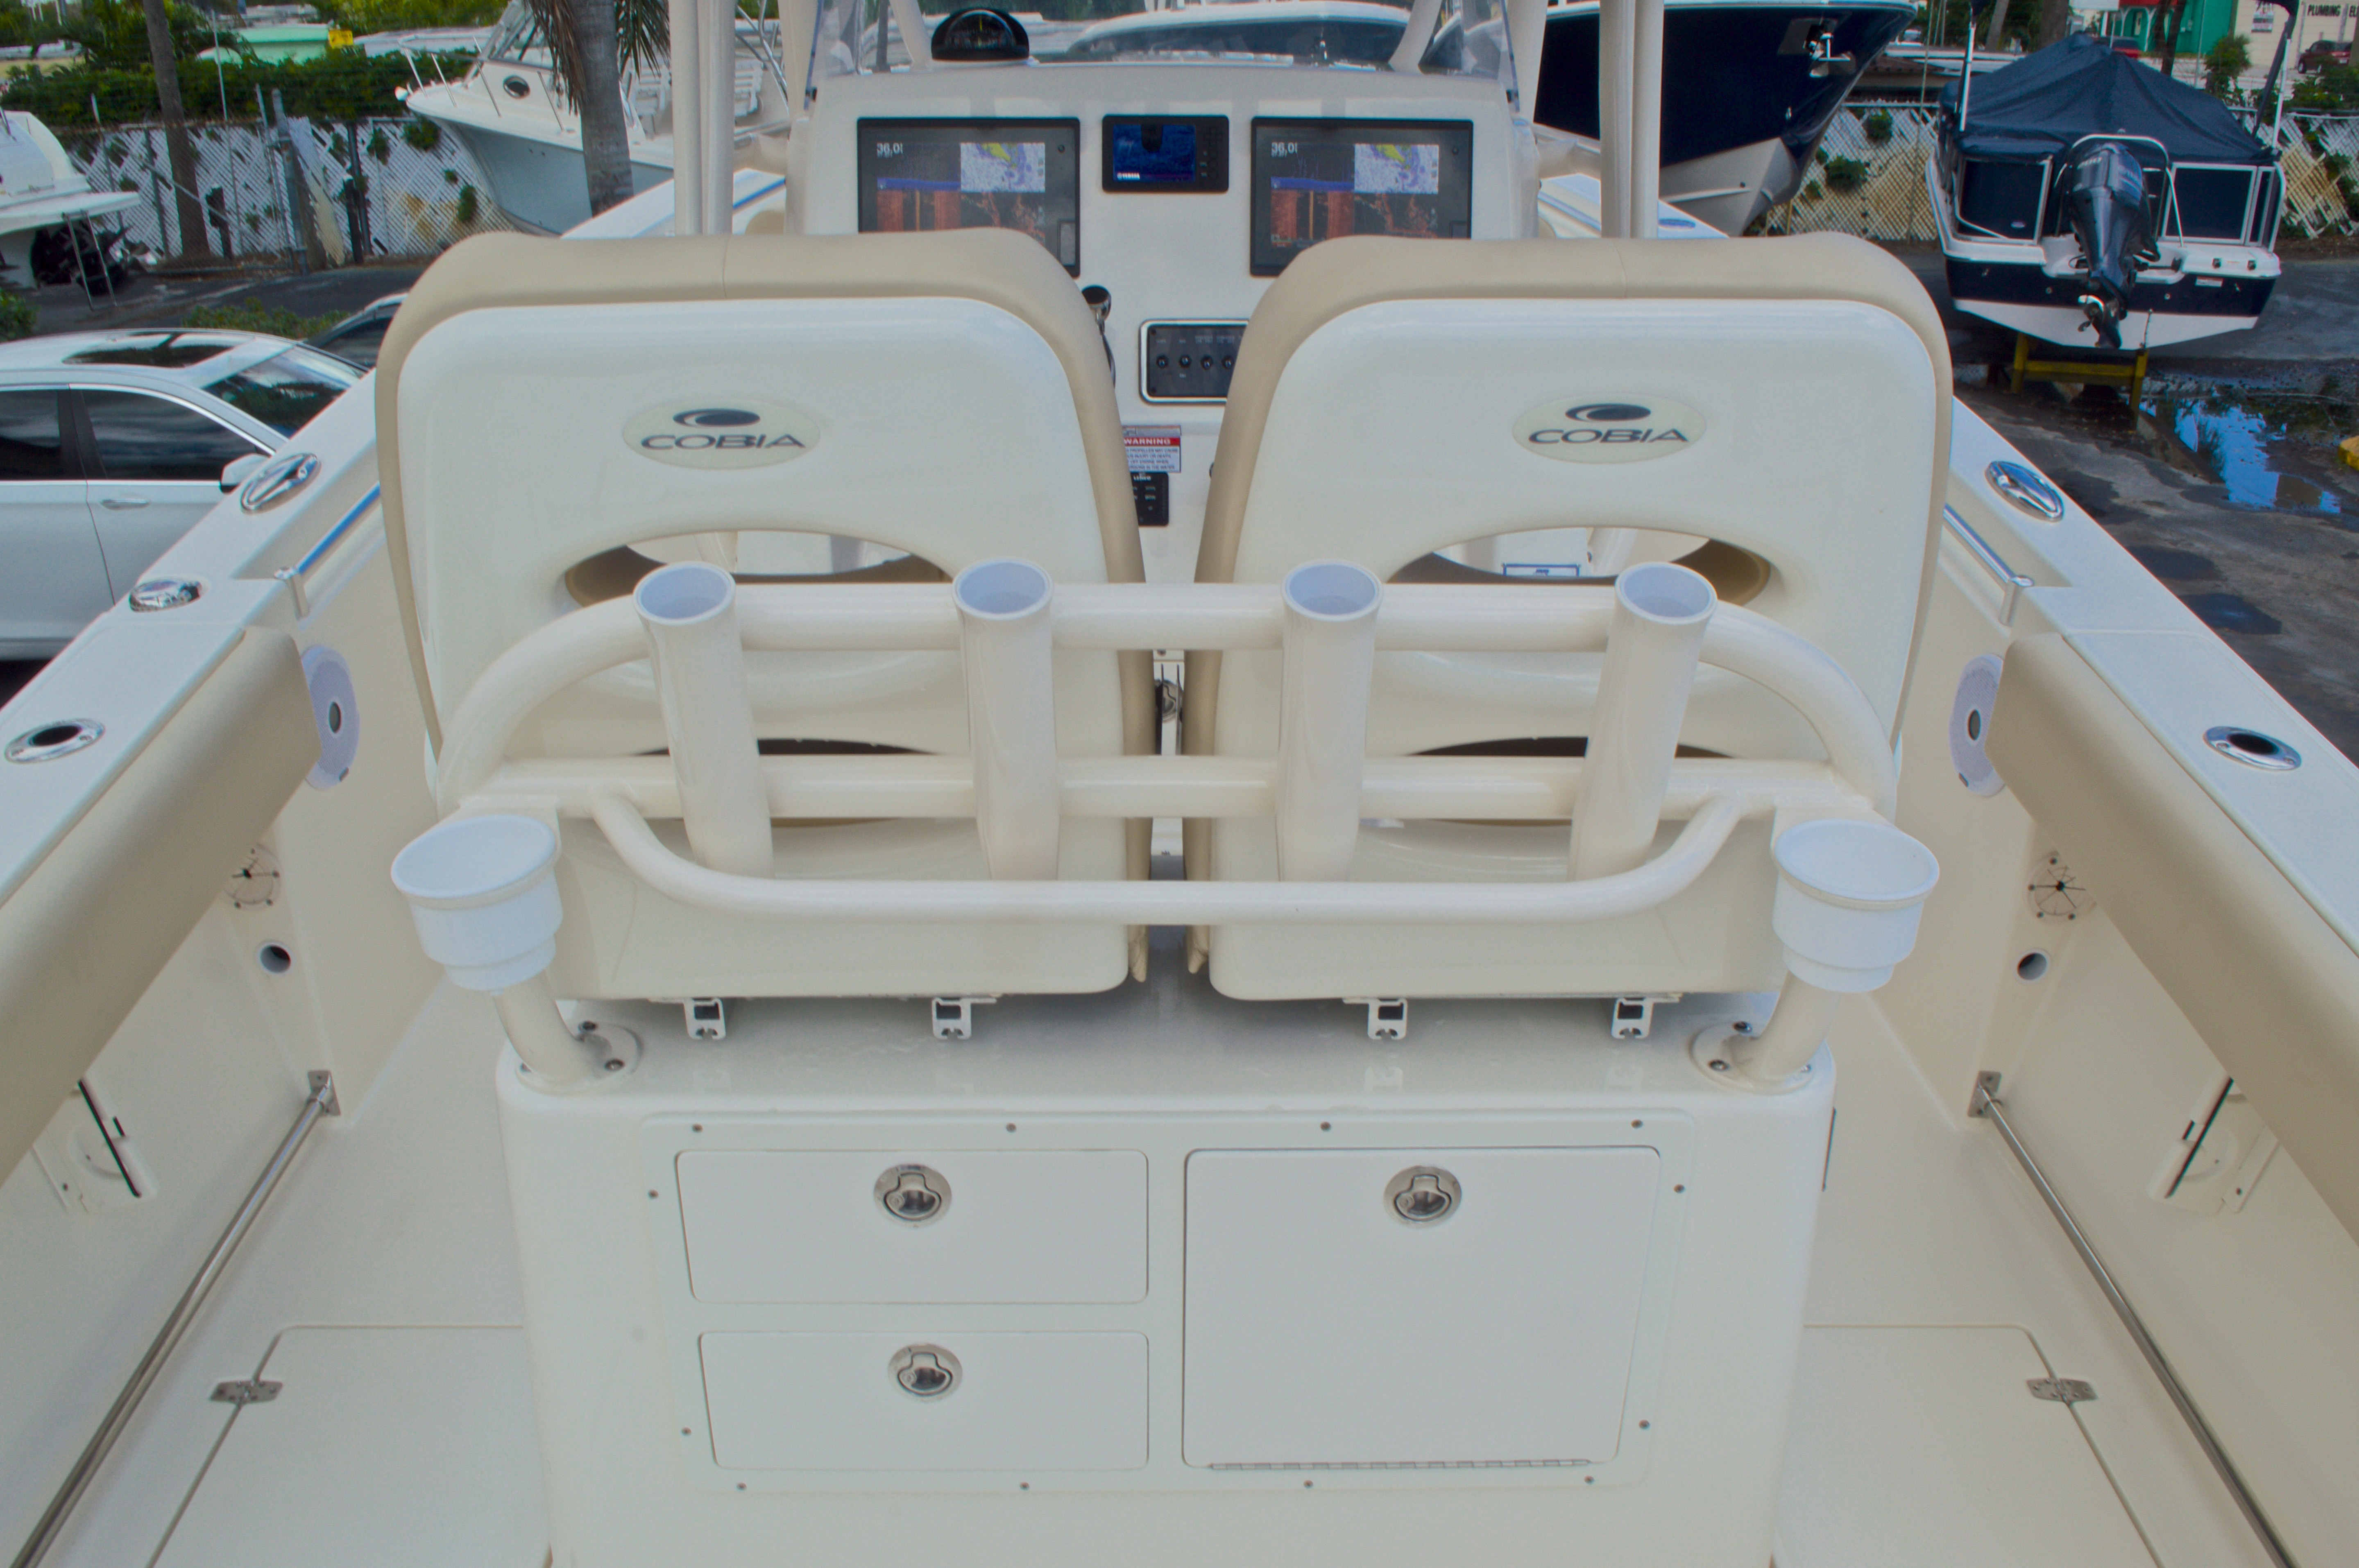 Thumbnail 11 for New 2016 Cobia 261 Center Console boat for sale in West Palm Beach, FL